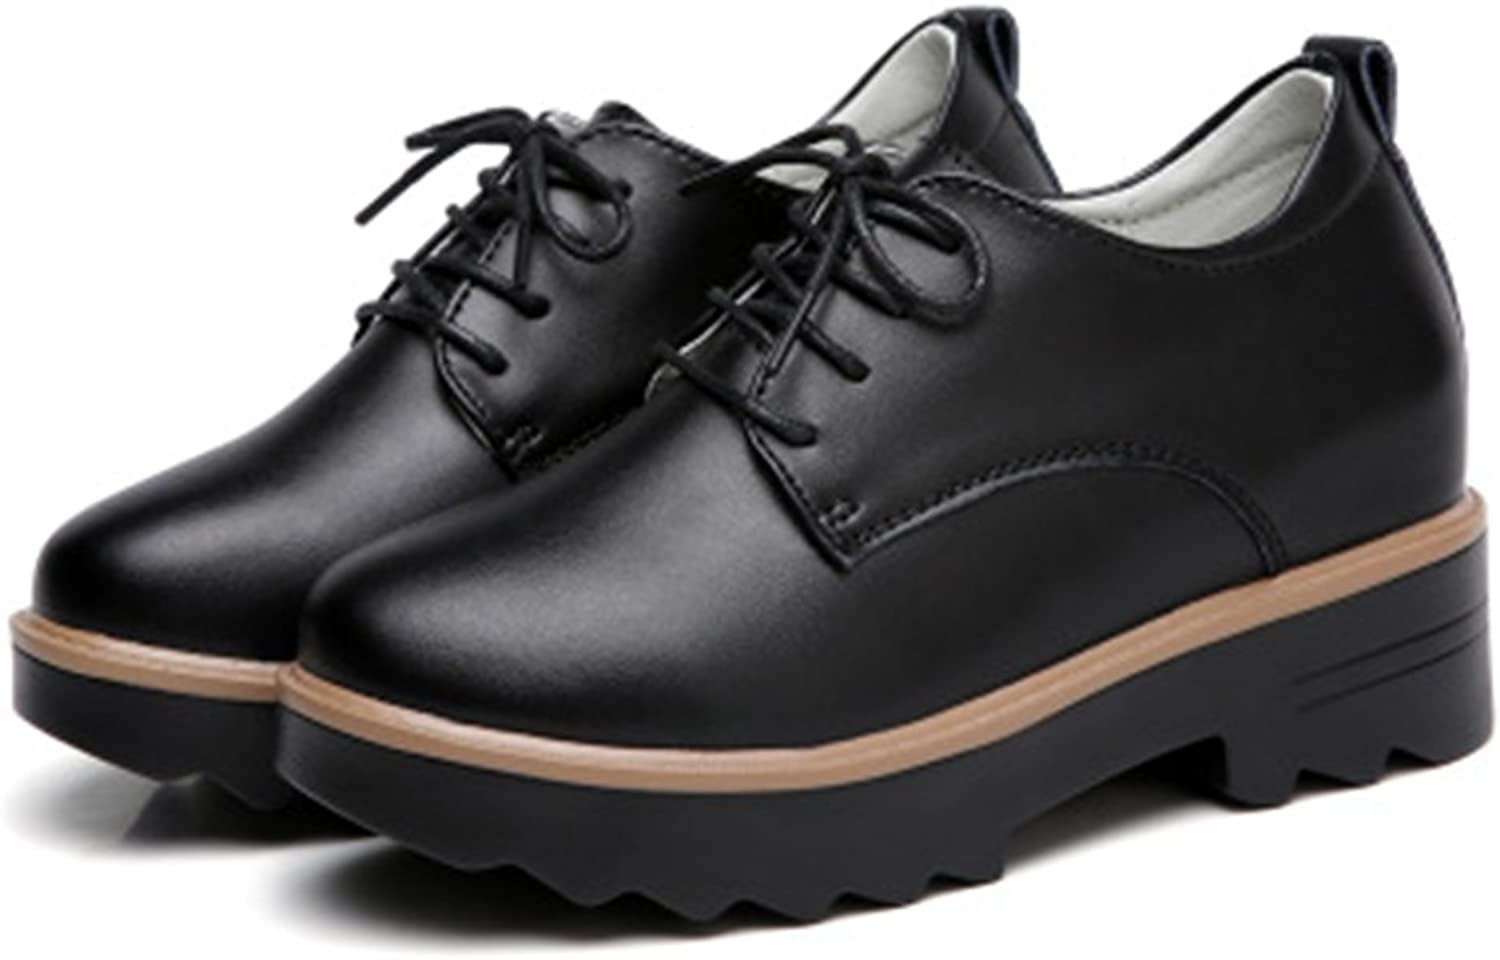 T-JULY Women's Retro Oxfords shoes - Classic Lace-up Increased Within Round Toe Business shoes